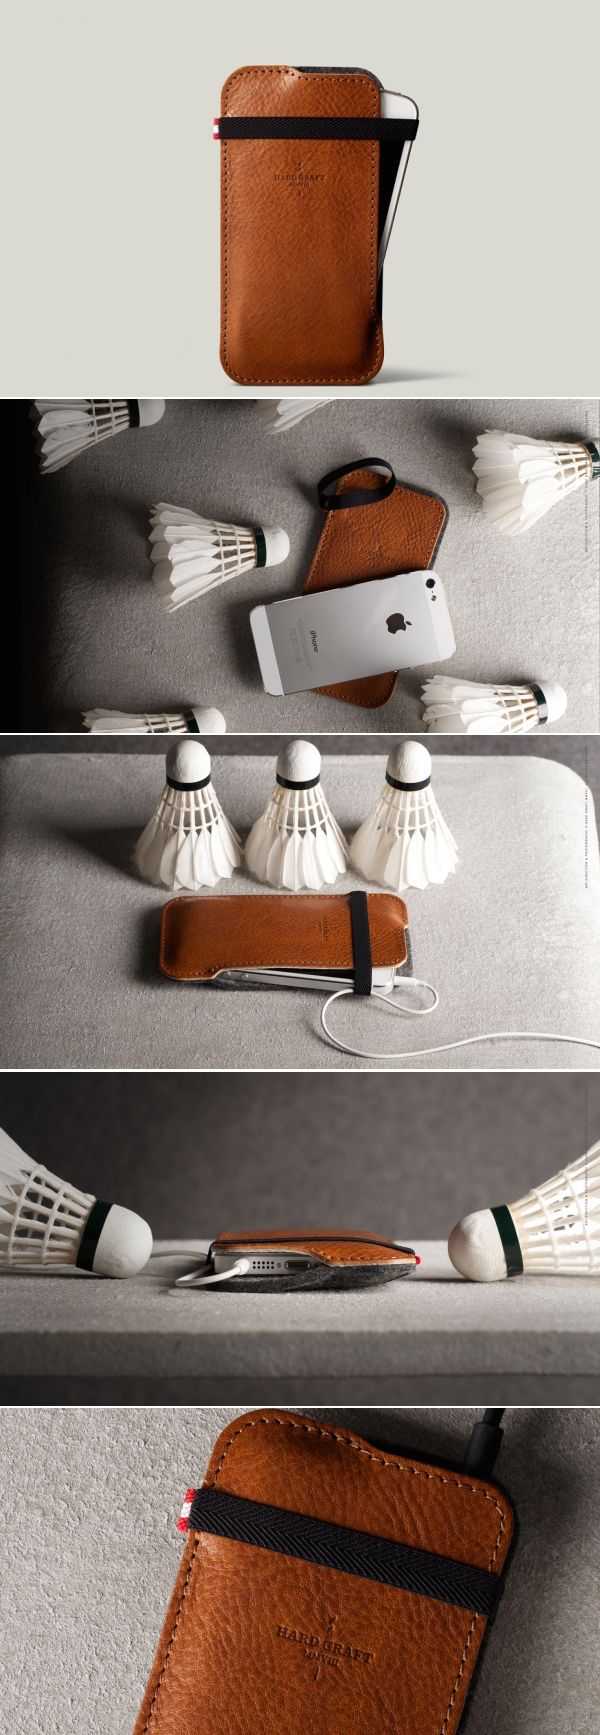 """Leren iPhone hoesjes vind je bij ons! - #make your own leather iphone case 